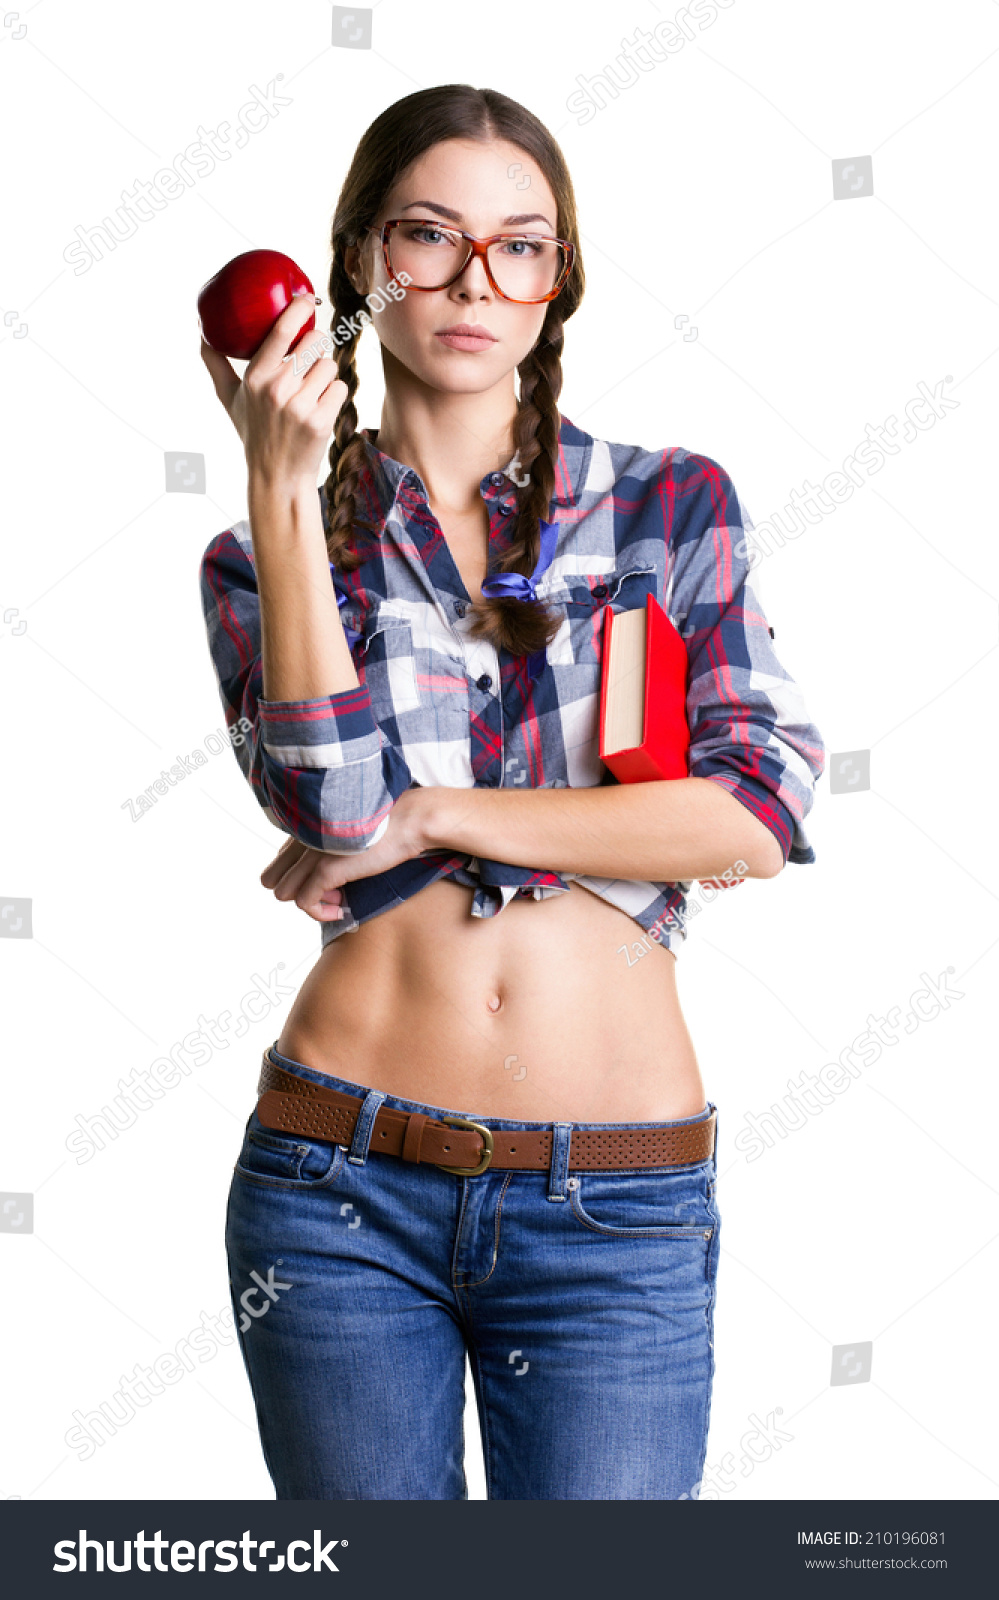 Bely teen smiling teen girl in big glasses, casual clothes and naked belly holding  book and apple